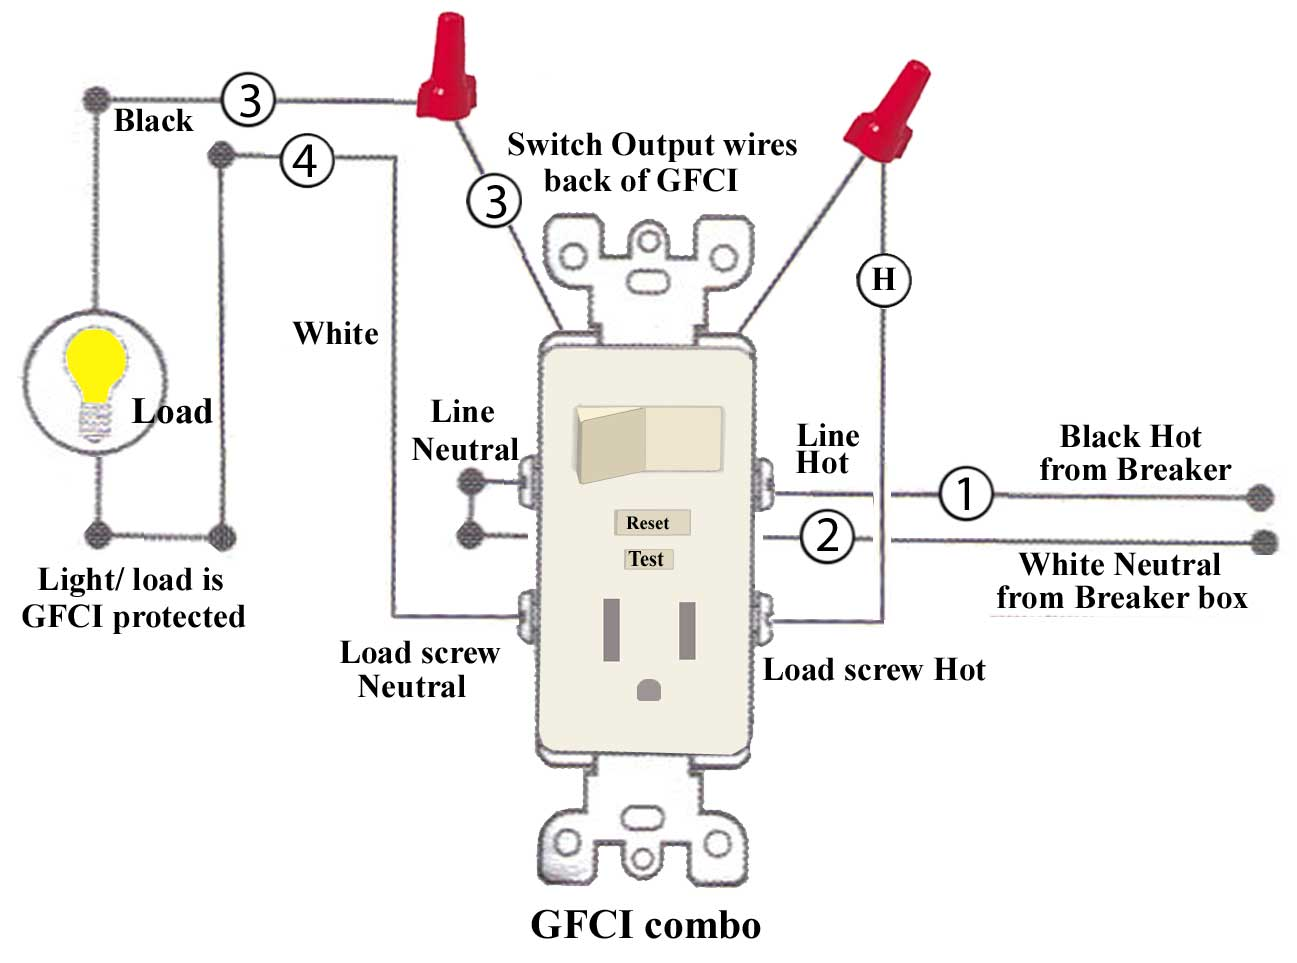 GFCI combo wiring update how to install and troubleshoot gfci combination switch and outlet wiring diagram at eliteediting.co